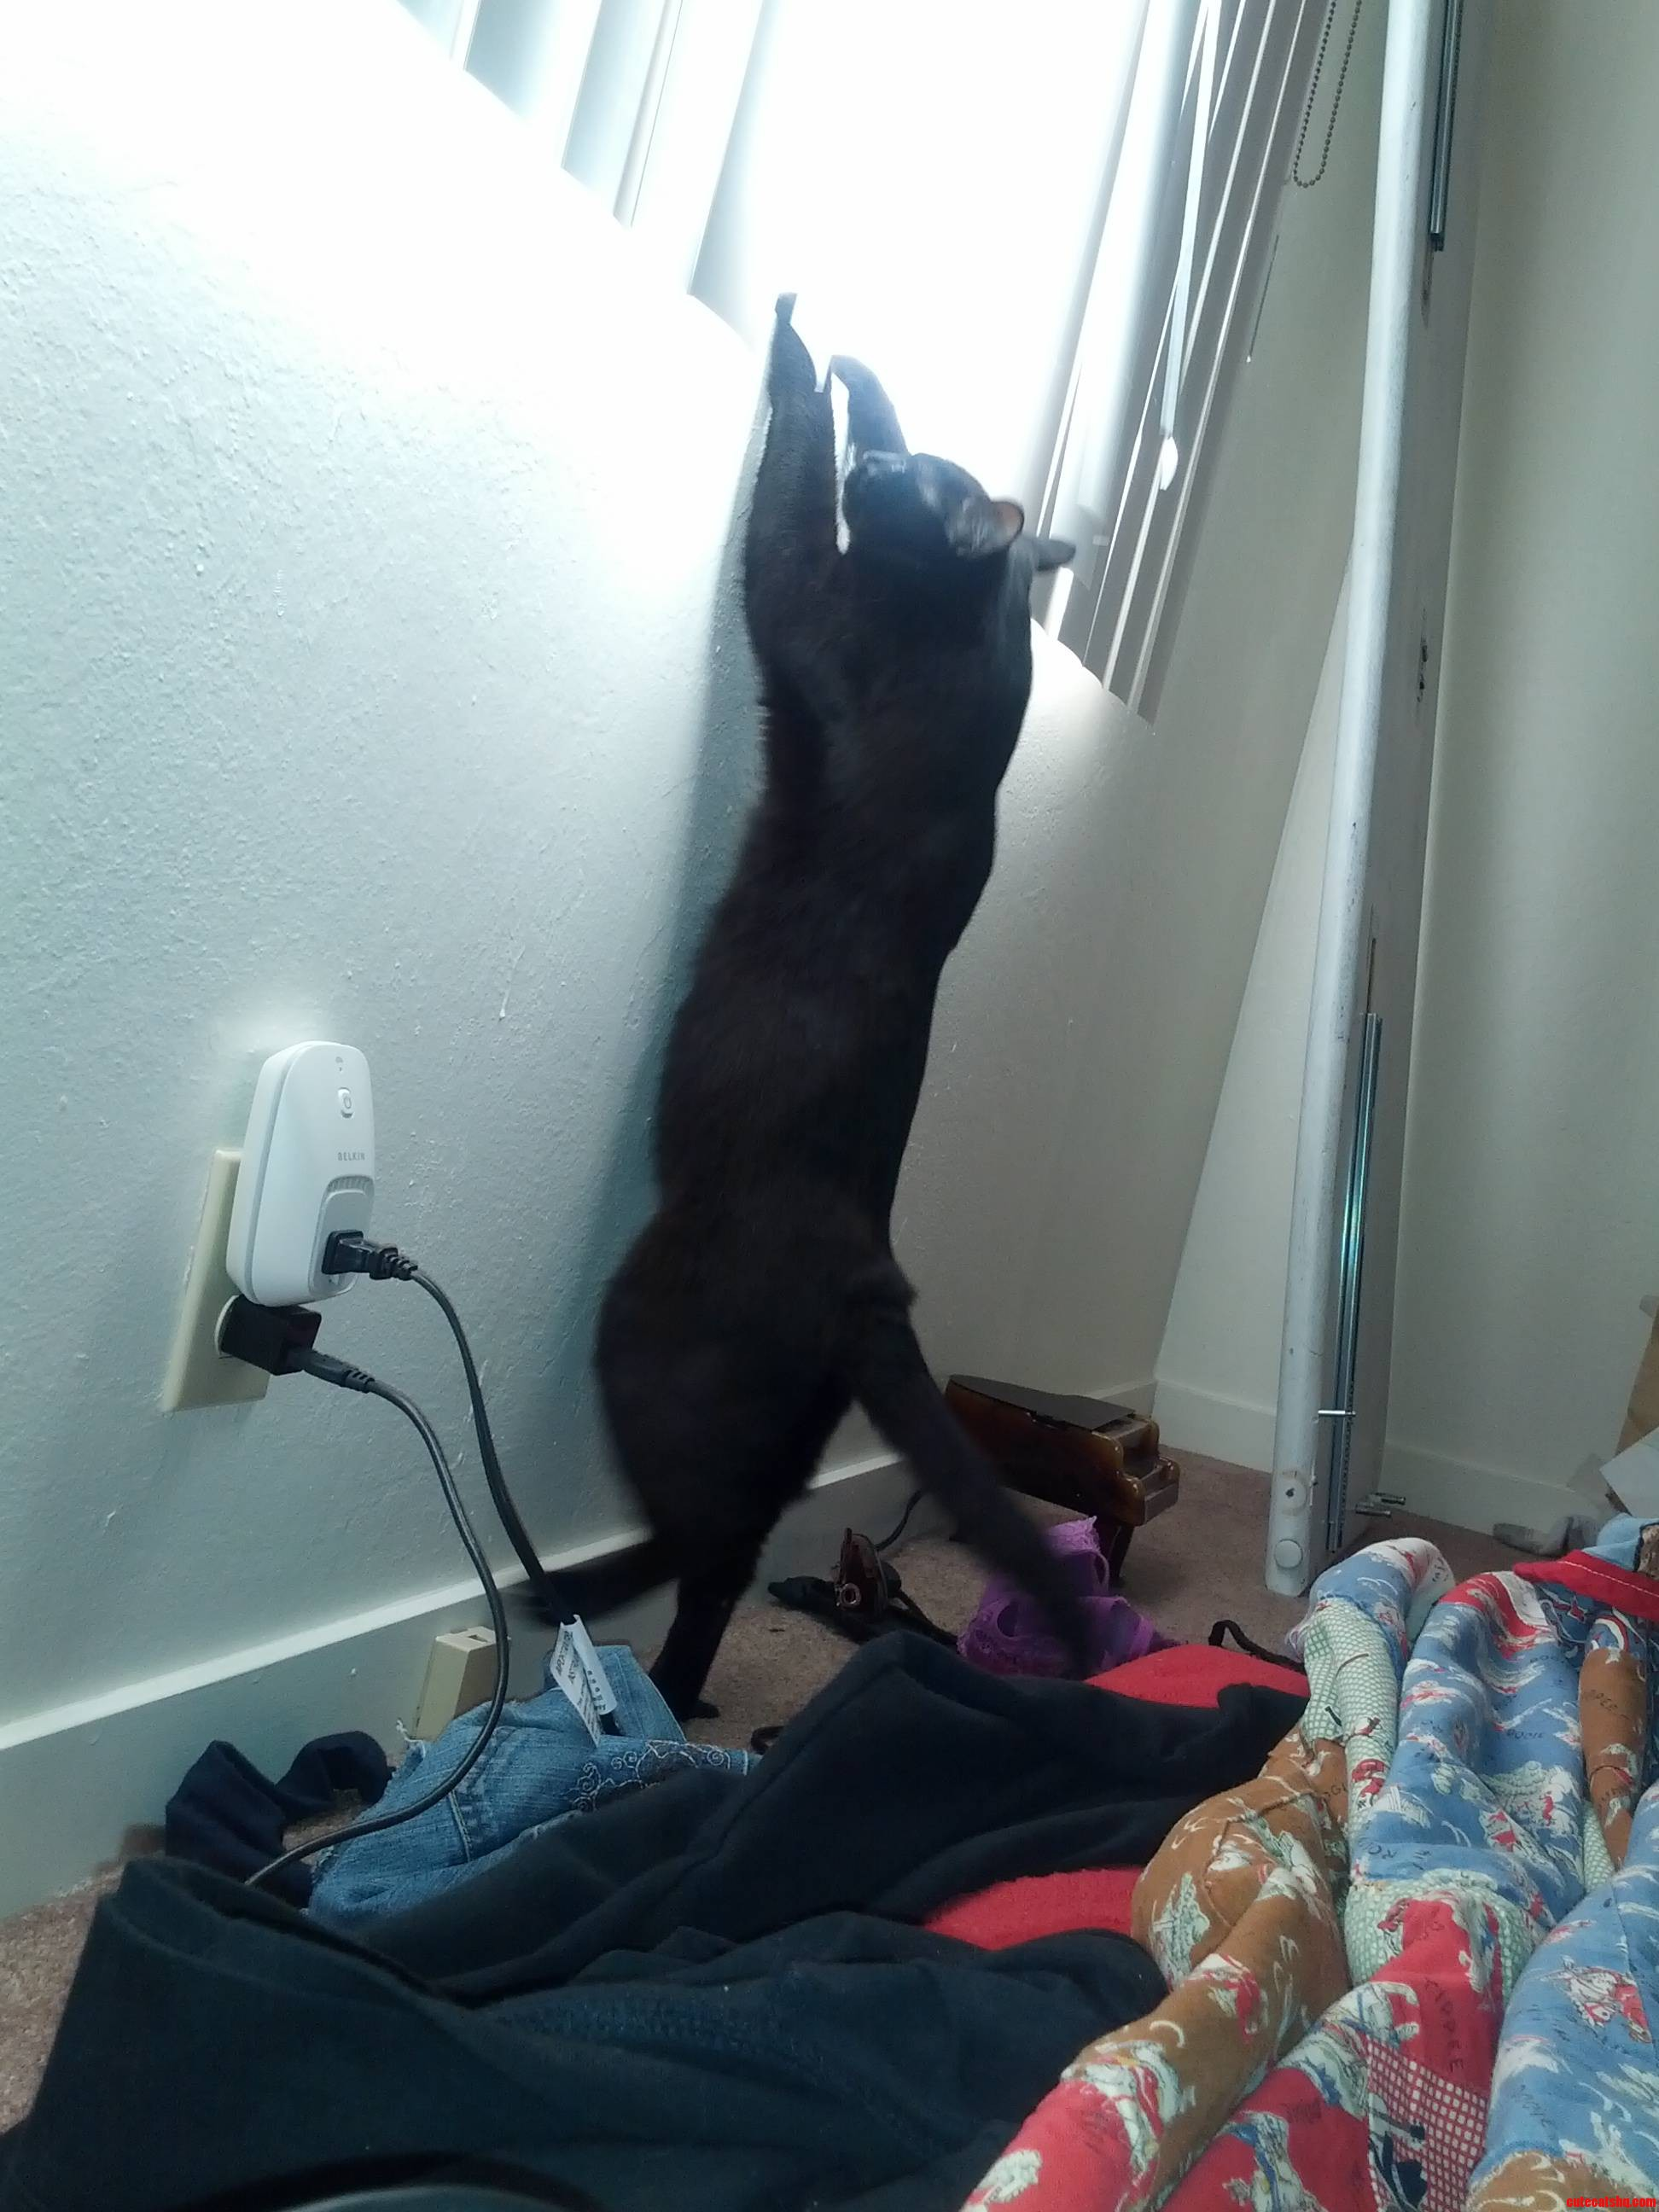 The Blinds Make A Loud Noise When He Tries To Jump Up  So He Wont Do It Unless We Pull Them Aside For Him.